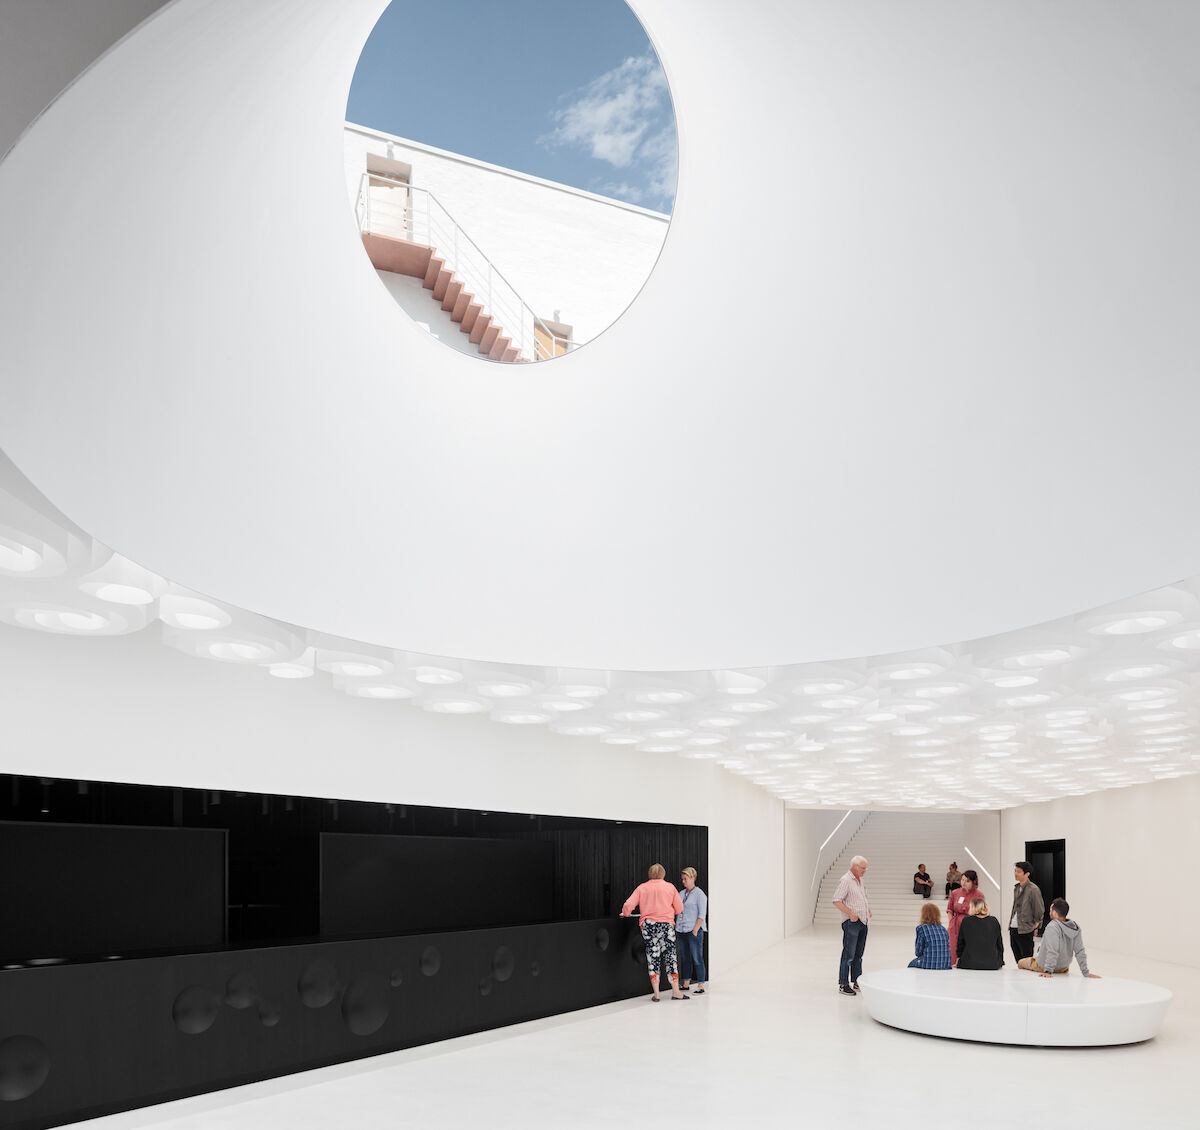 The interior of the new Amos Rex museum in Helsinki. Photo by Mika Huisman, courtesy Amos Rex.